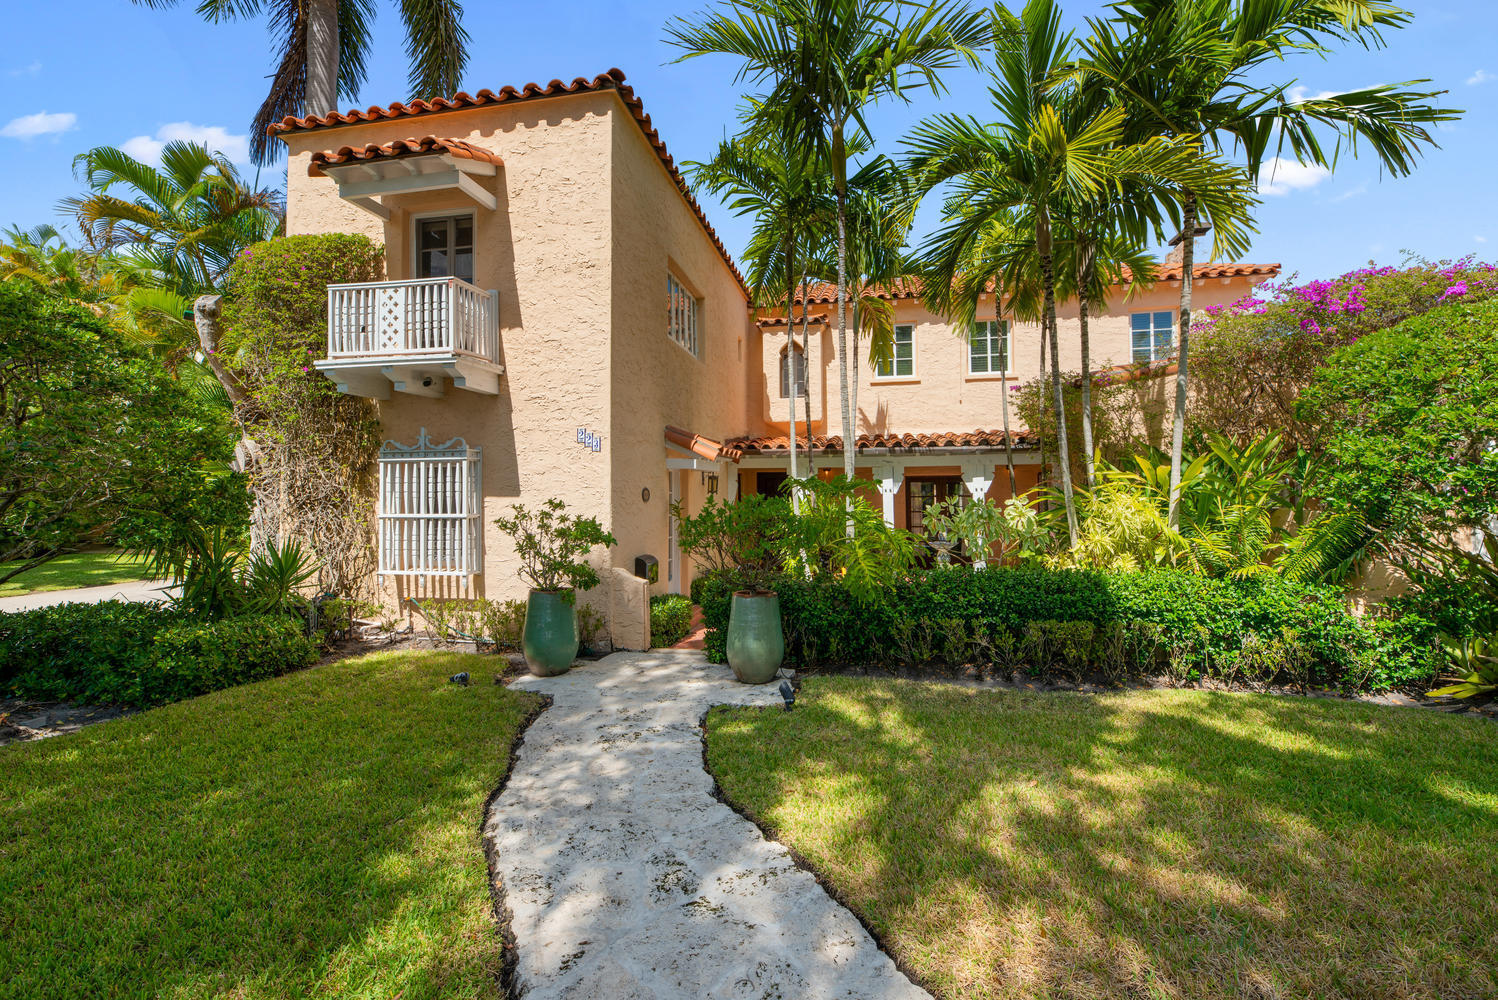 223 Sunset Road, West Palm Beach, Florida 33405, 5 Bedrooms Bedrooms, ,4.1 BathroomsBathrooms,Single Family,For Sale,Sunset,RX-10567462